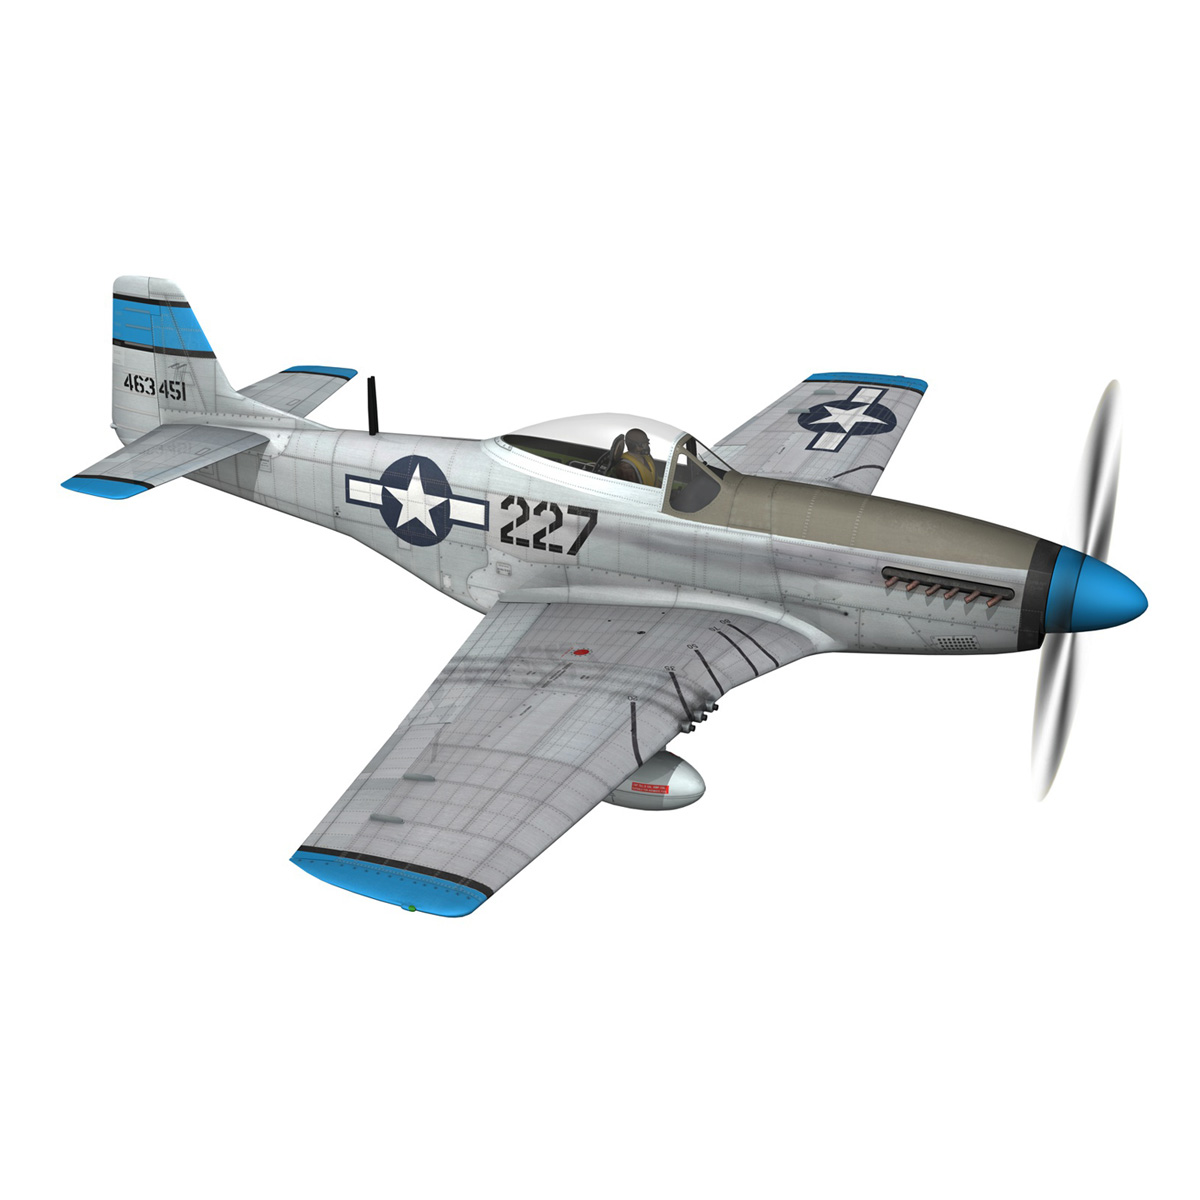 north american p-51d – mustang – mary alyce 3d model 3ds fbx c4d lwo obj 267573